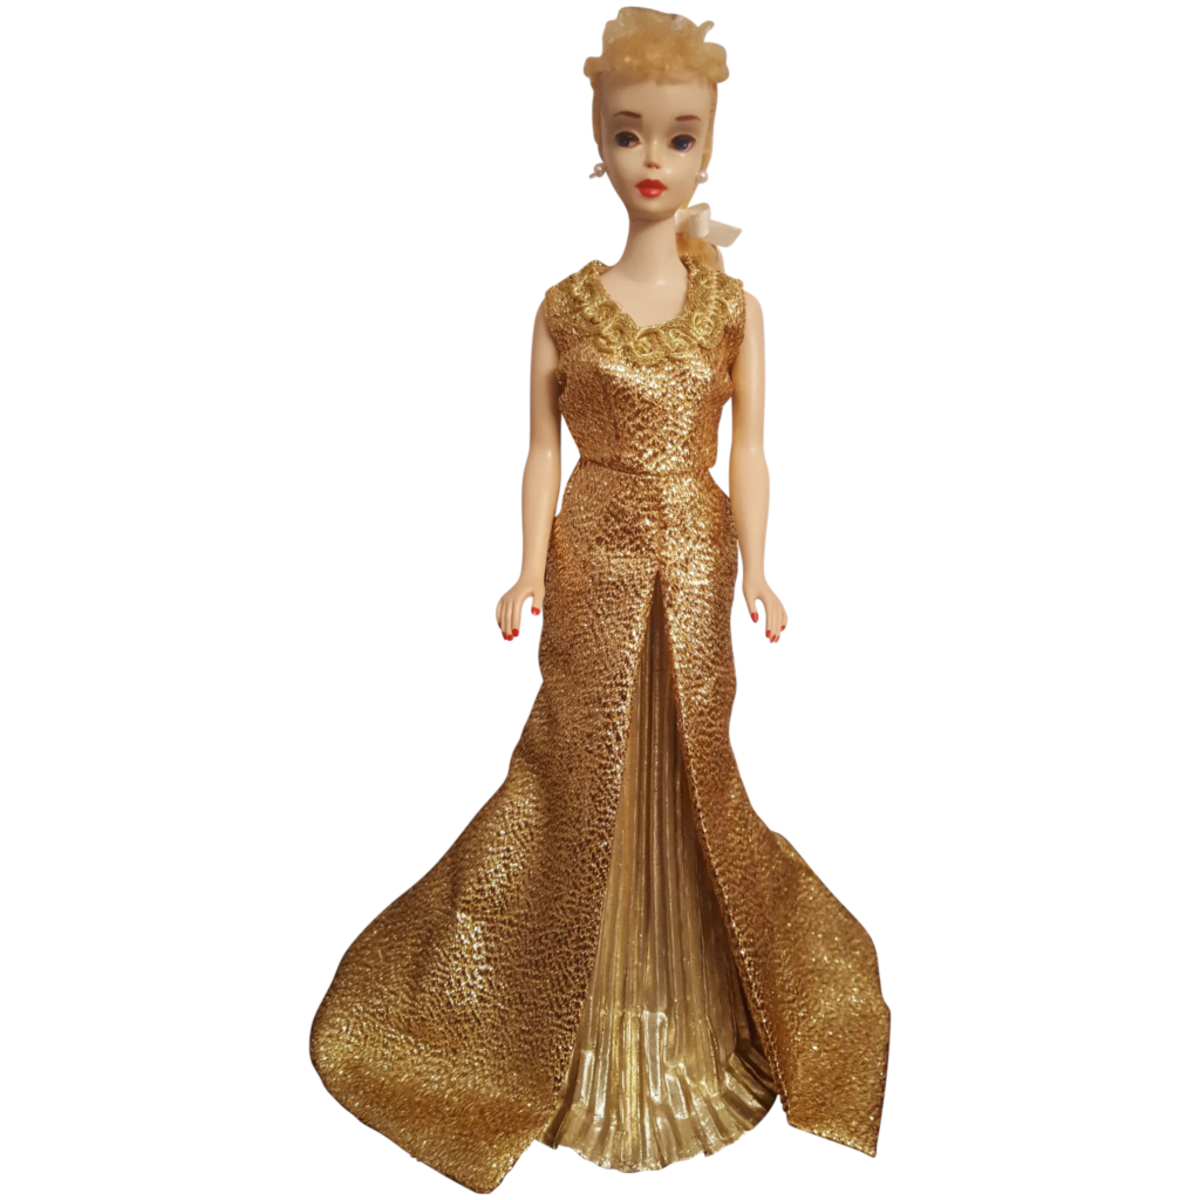 Barbie remains the queen of dolls. Vintage #3 Blonde ponytail Barbie Doll with brown liner and looking glamorous in her gold gown; $795. Courtesy of Old is New: rubylane.com/shop/vintage-finds